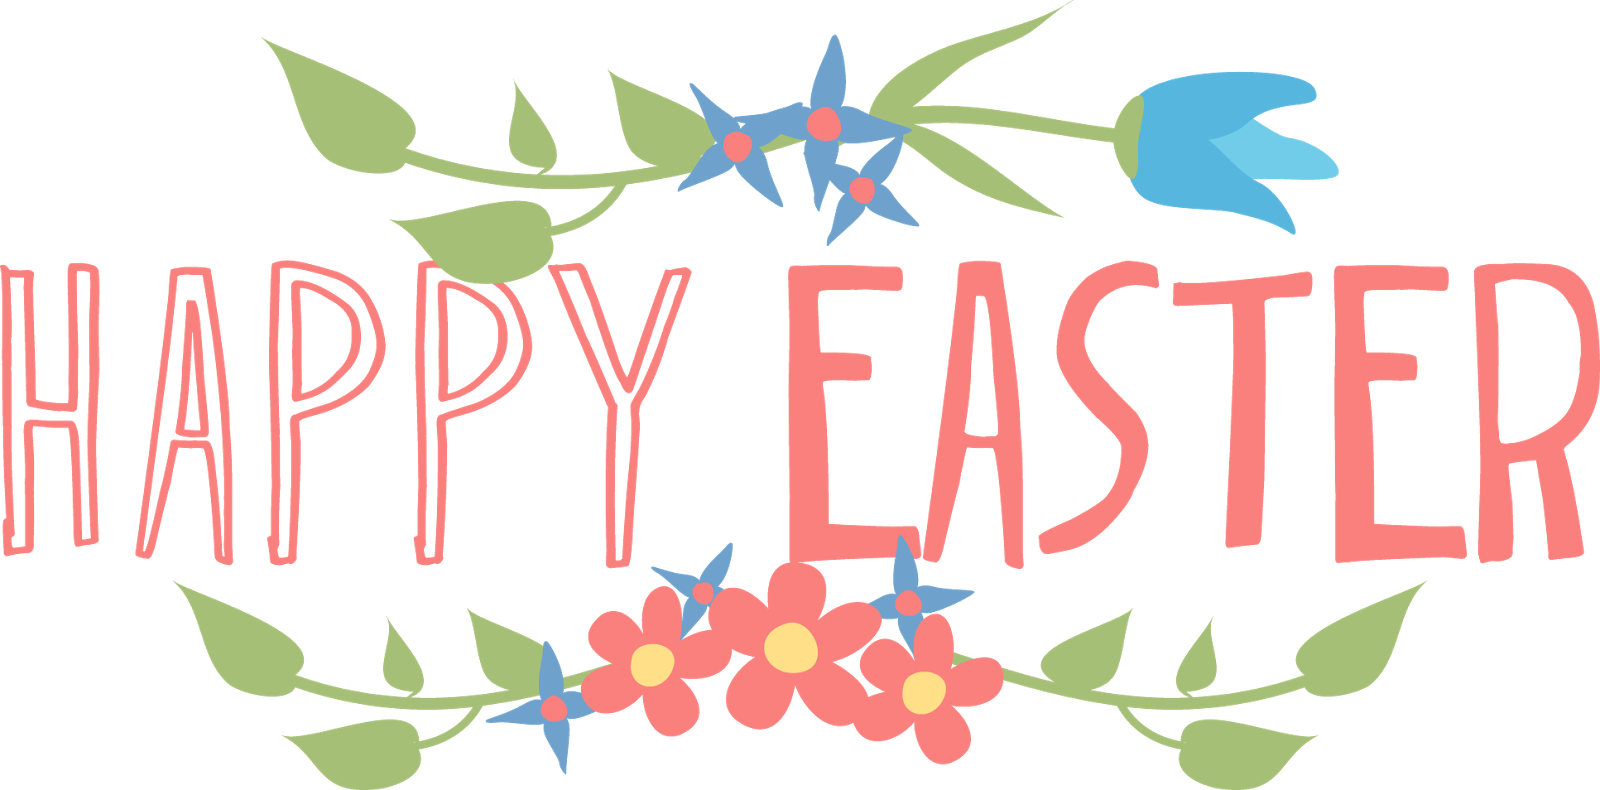 Holidays/happy-easter-signs-clip-art-happy-easter.jpg